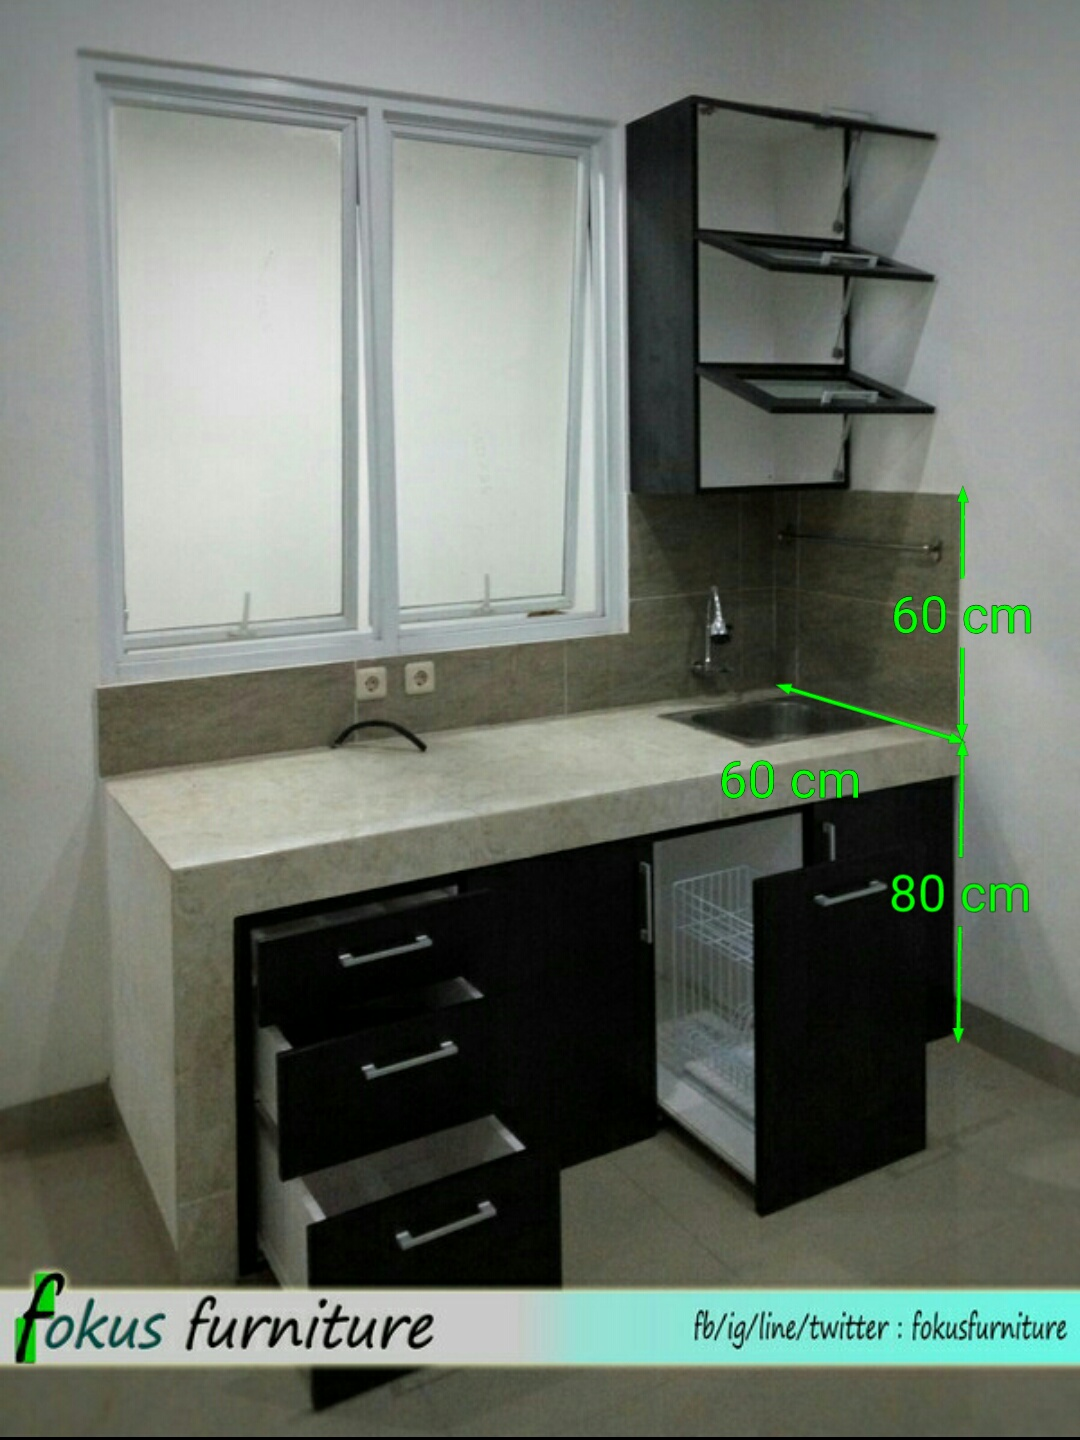 Ukuran Kitchen Set Furniture Kitchen Set Minimalis Lemari Pakaian